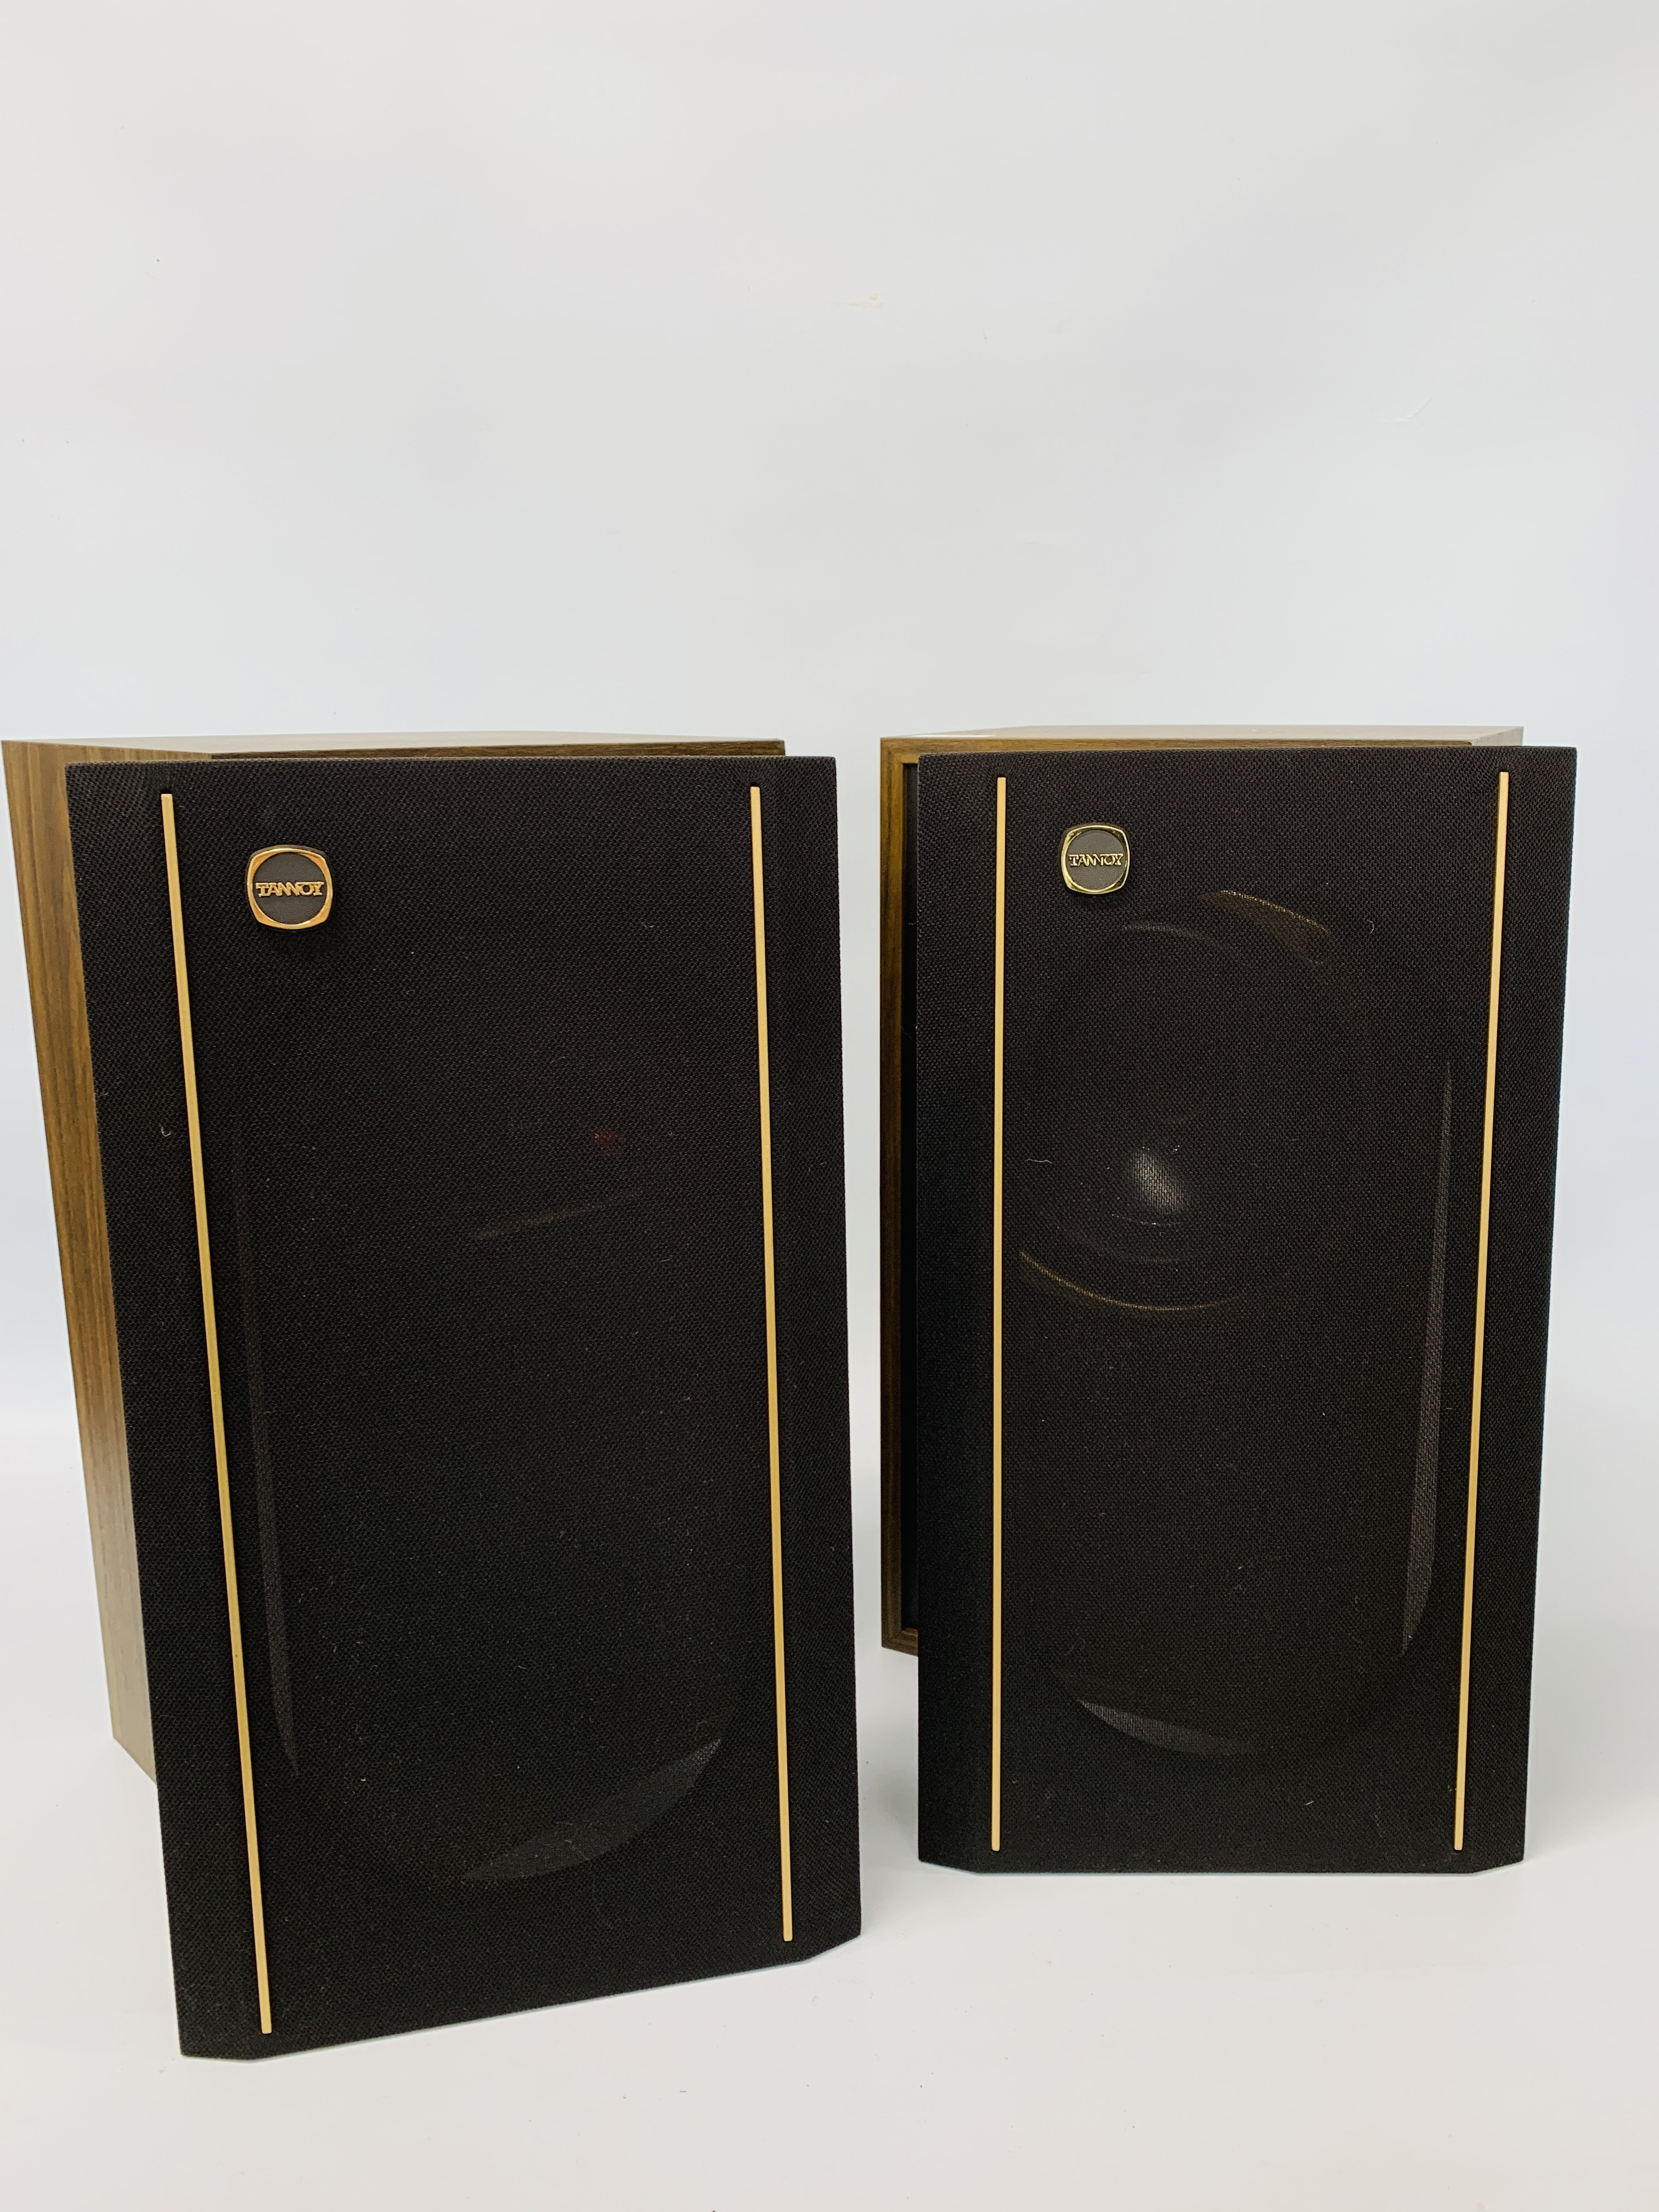 A PAIR OF DC-100 DUAL CONCENTRIC LOUD SPEAKERS - SOLD AS SEEN - Image 10 of 12